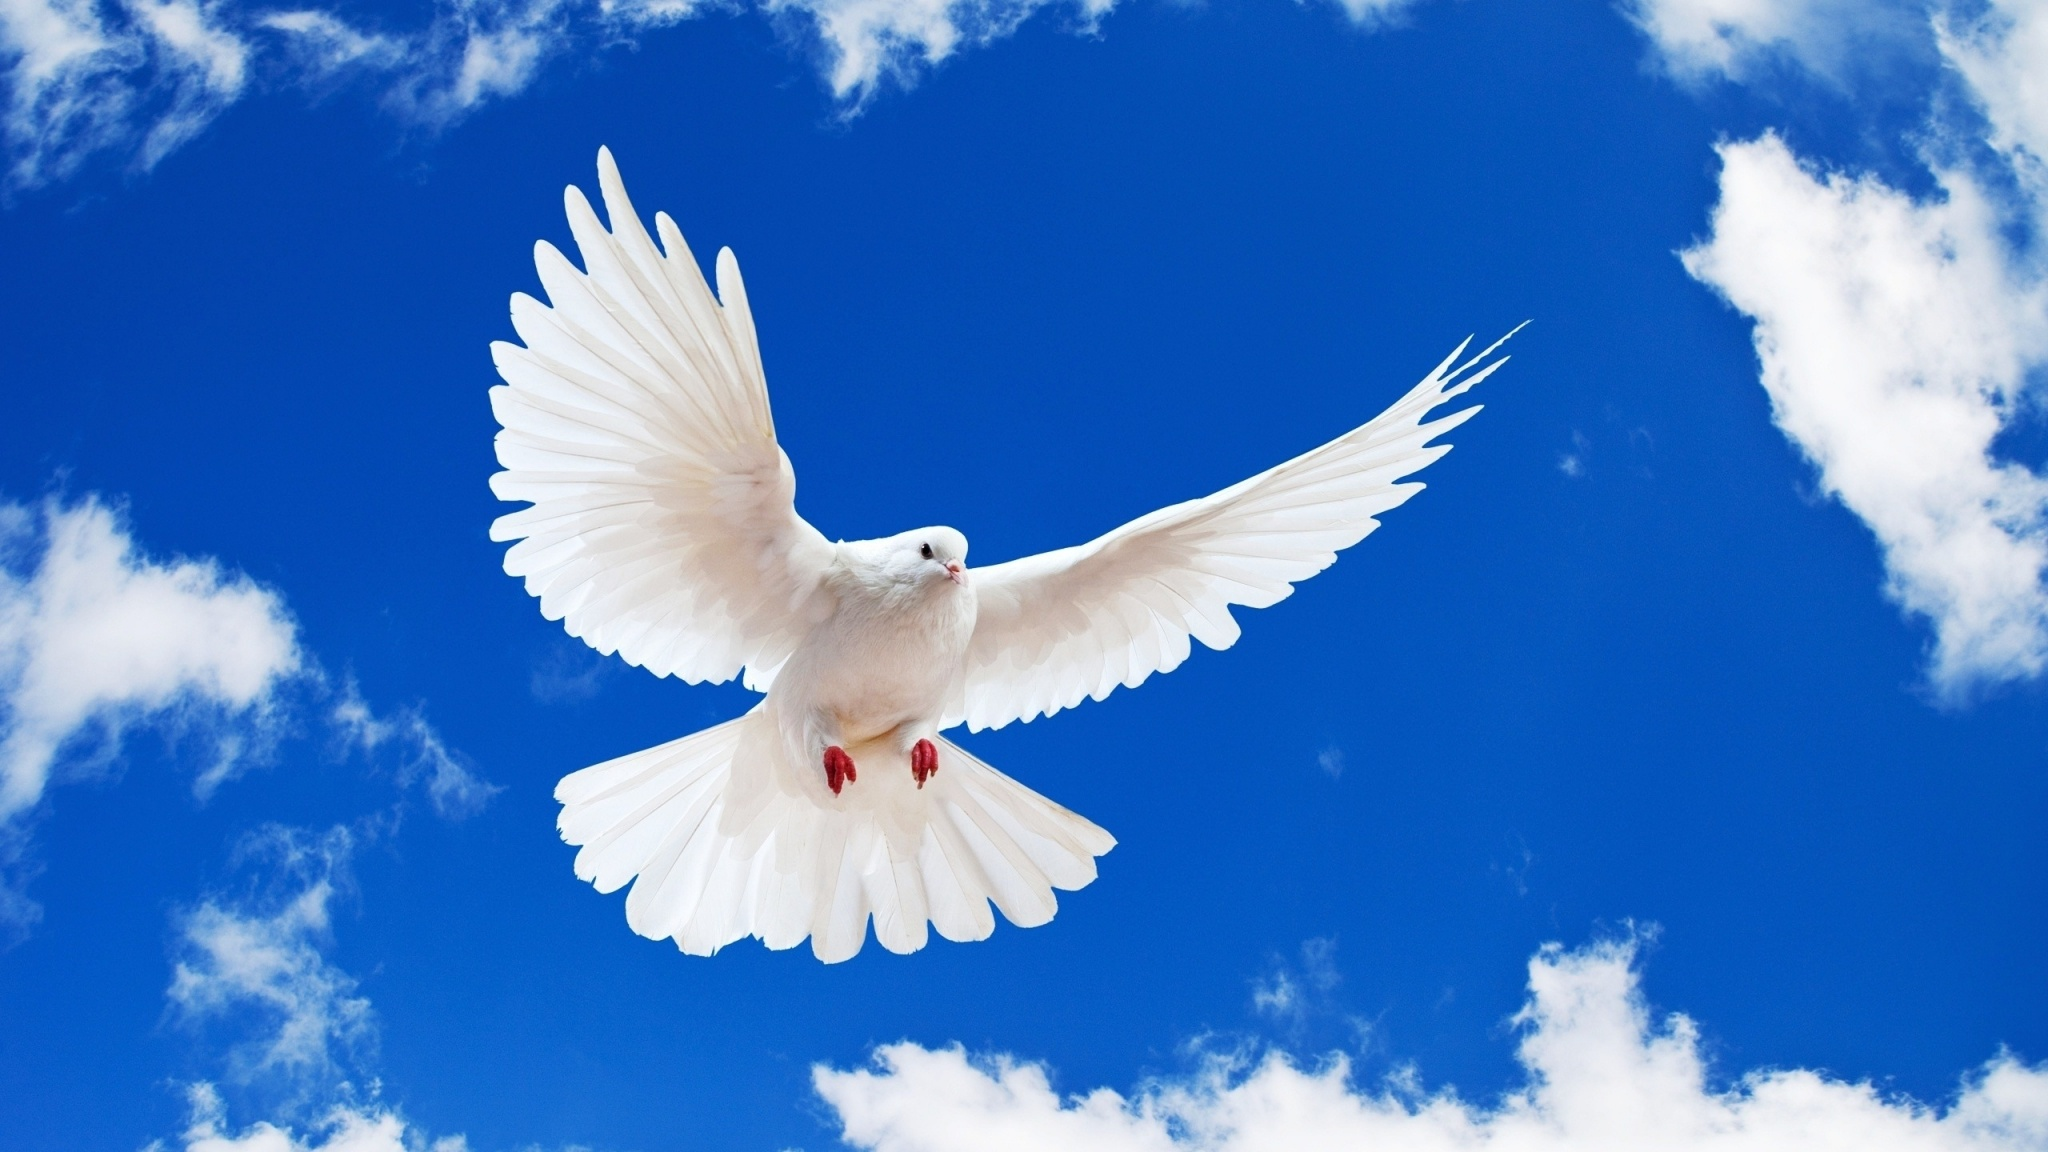 beautiful white dove wallpapers 2048x1152 508680